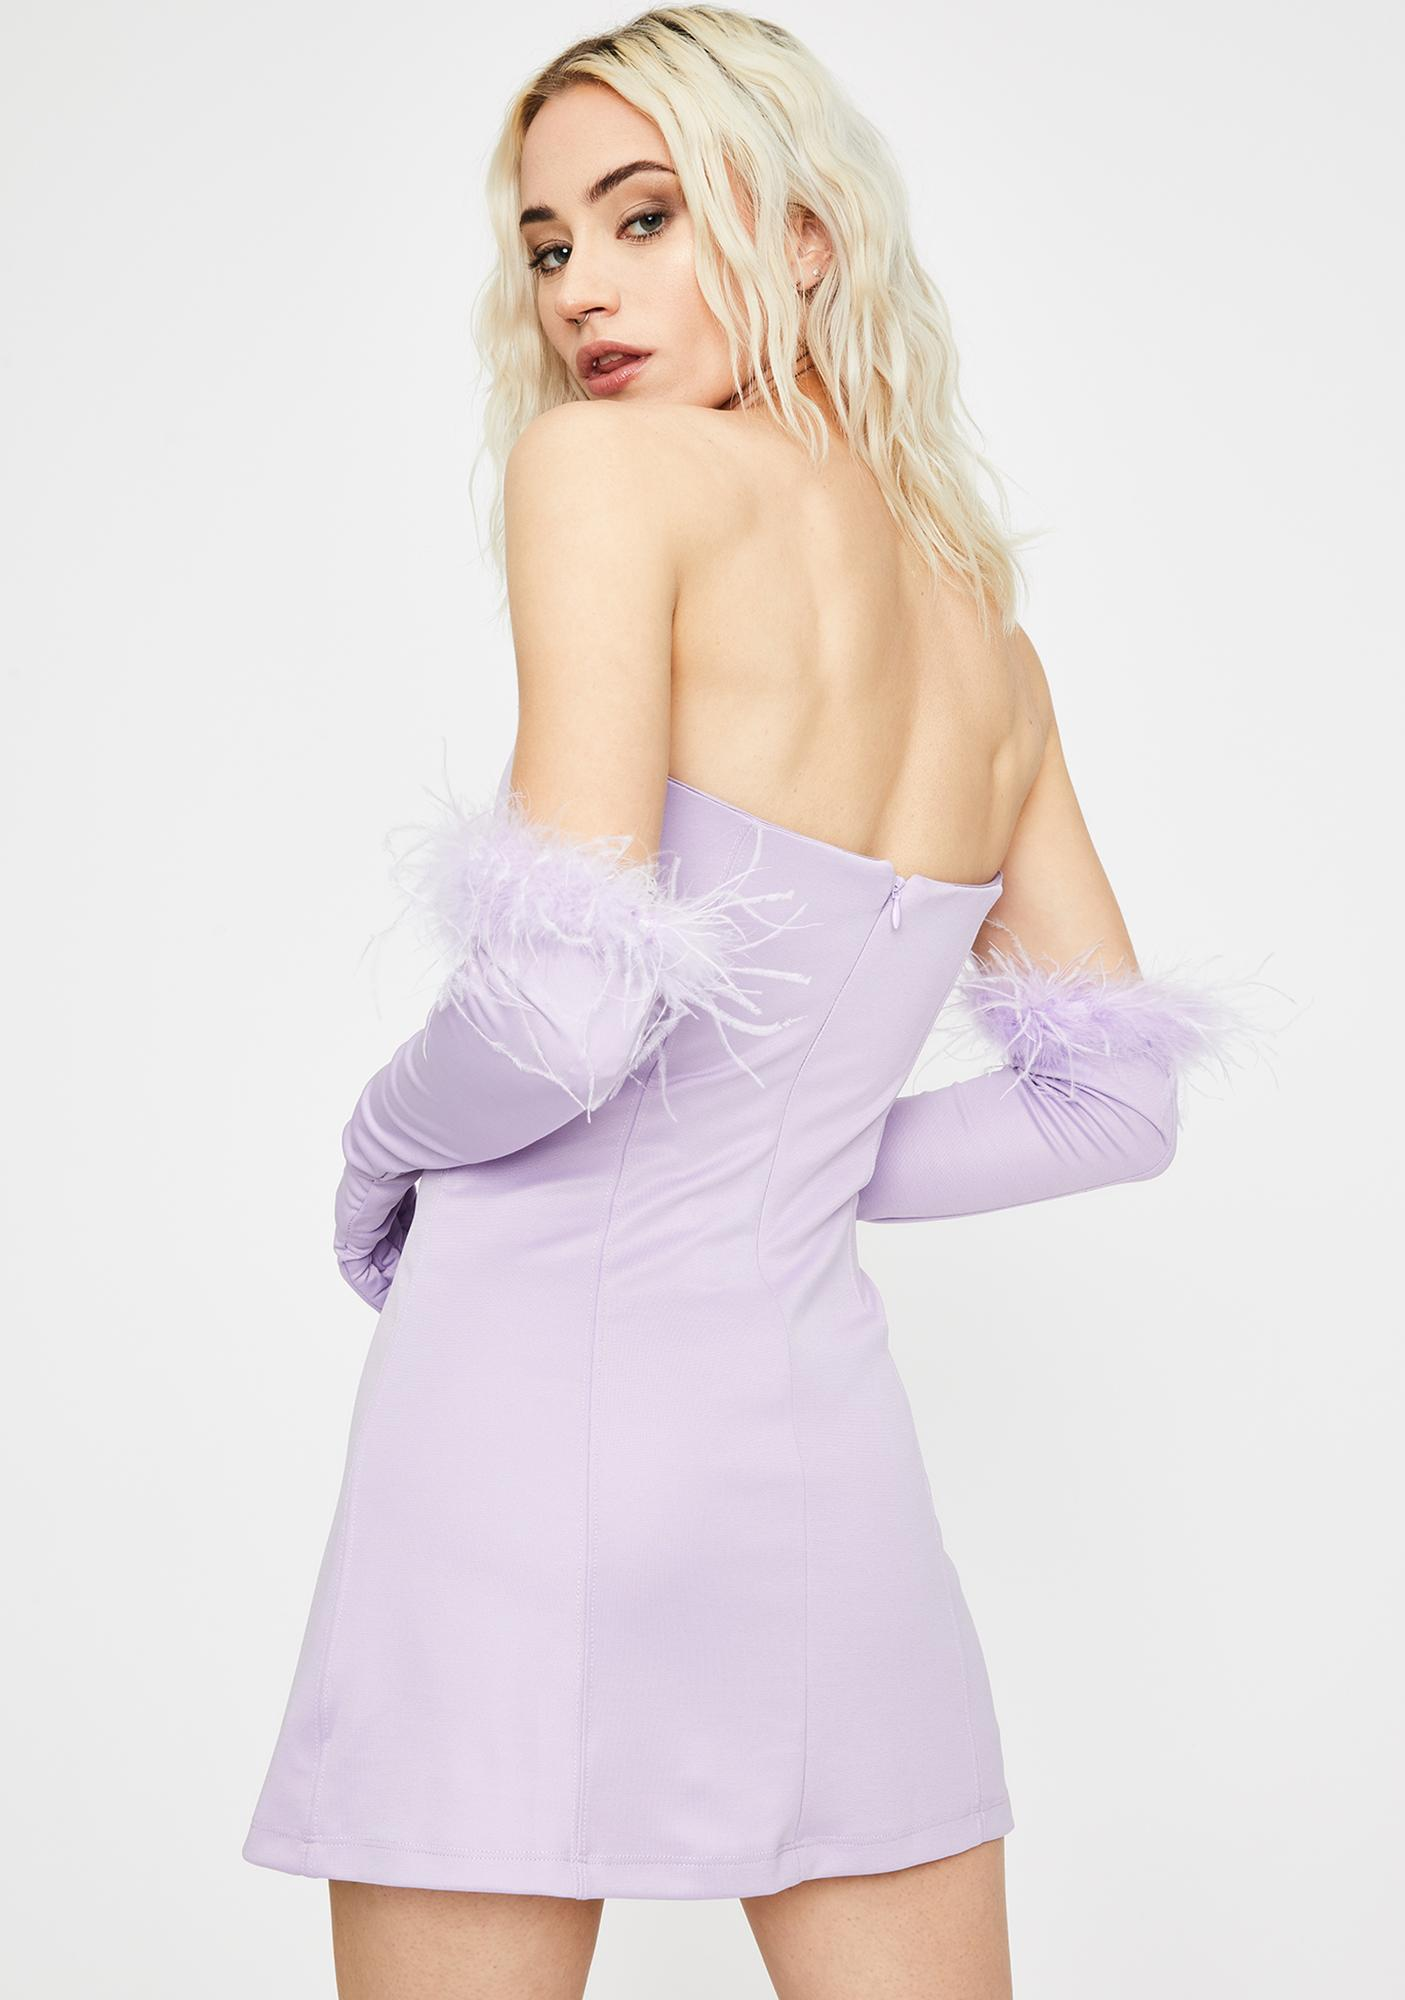 Kiki Riki Lilac Have Some Fun Strapless Dress